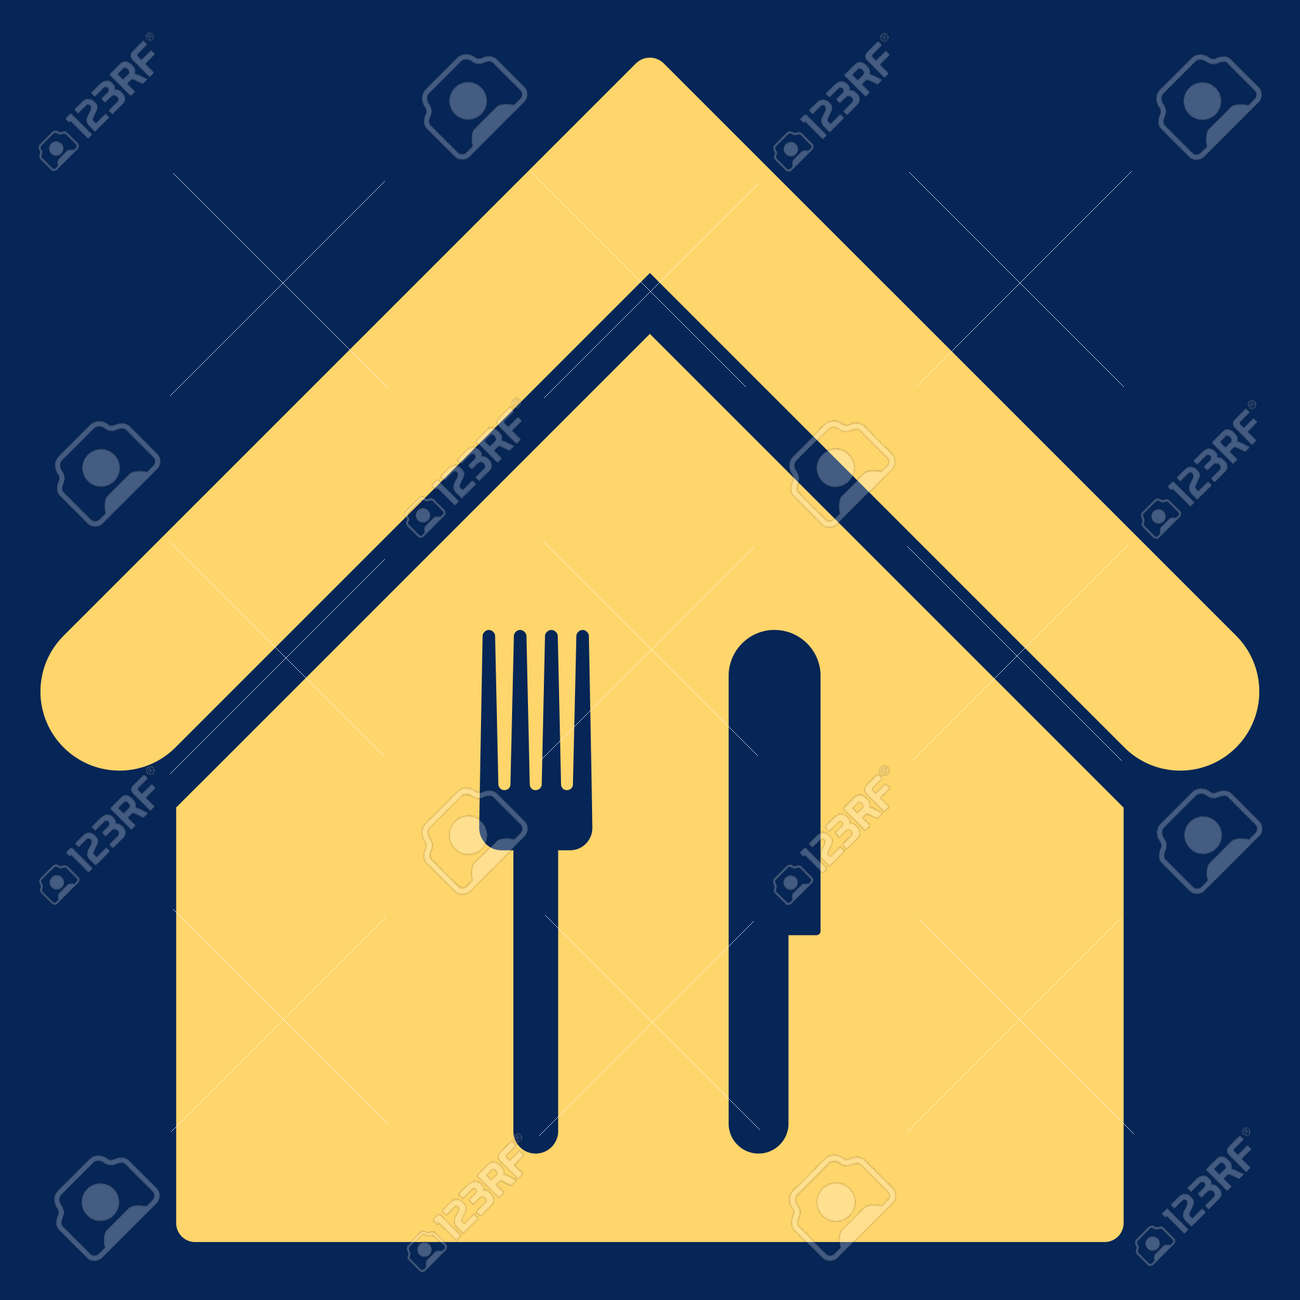 Restaurant Icon Glyph Style Is Flat Iconic Symbol Yellow Color Stock Photo Picture And Royalty Free Image Image 64731942